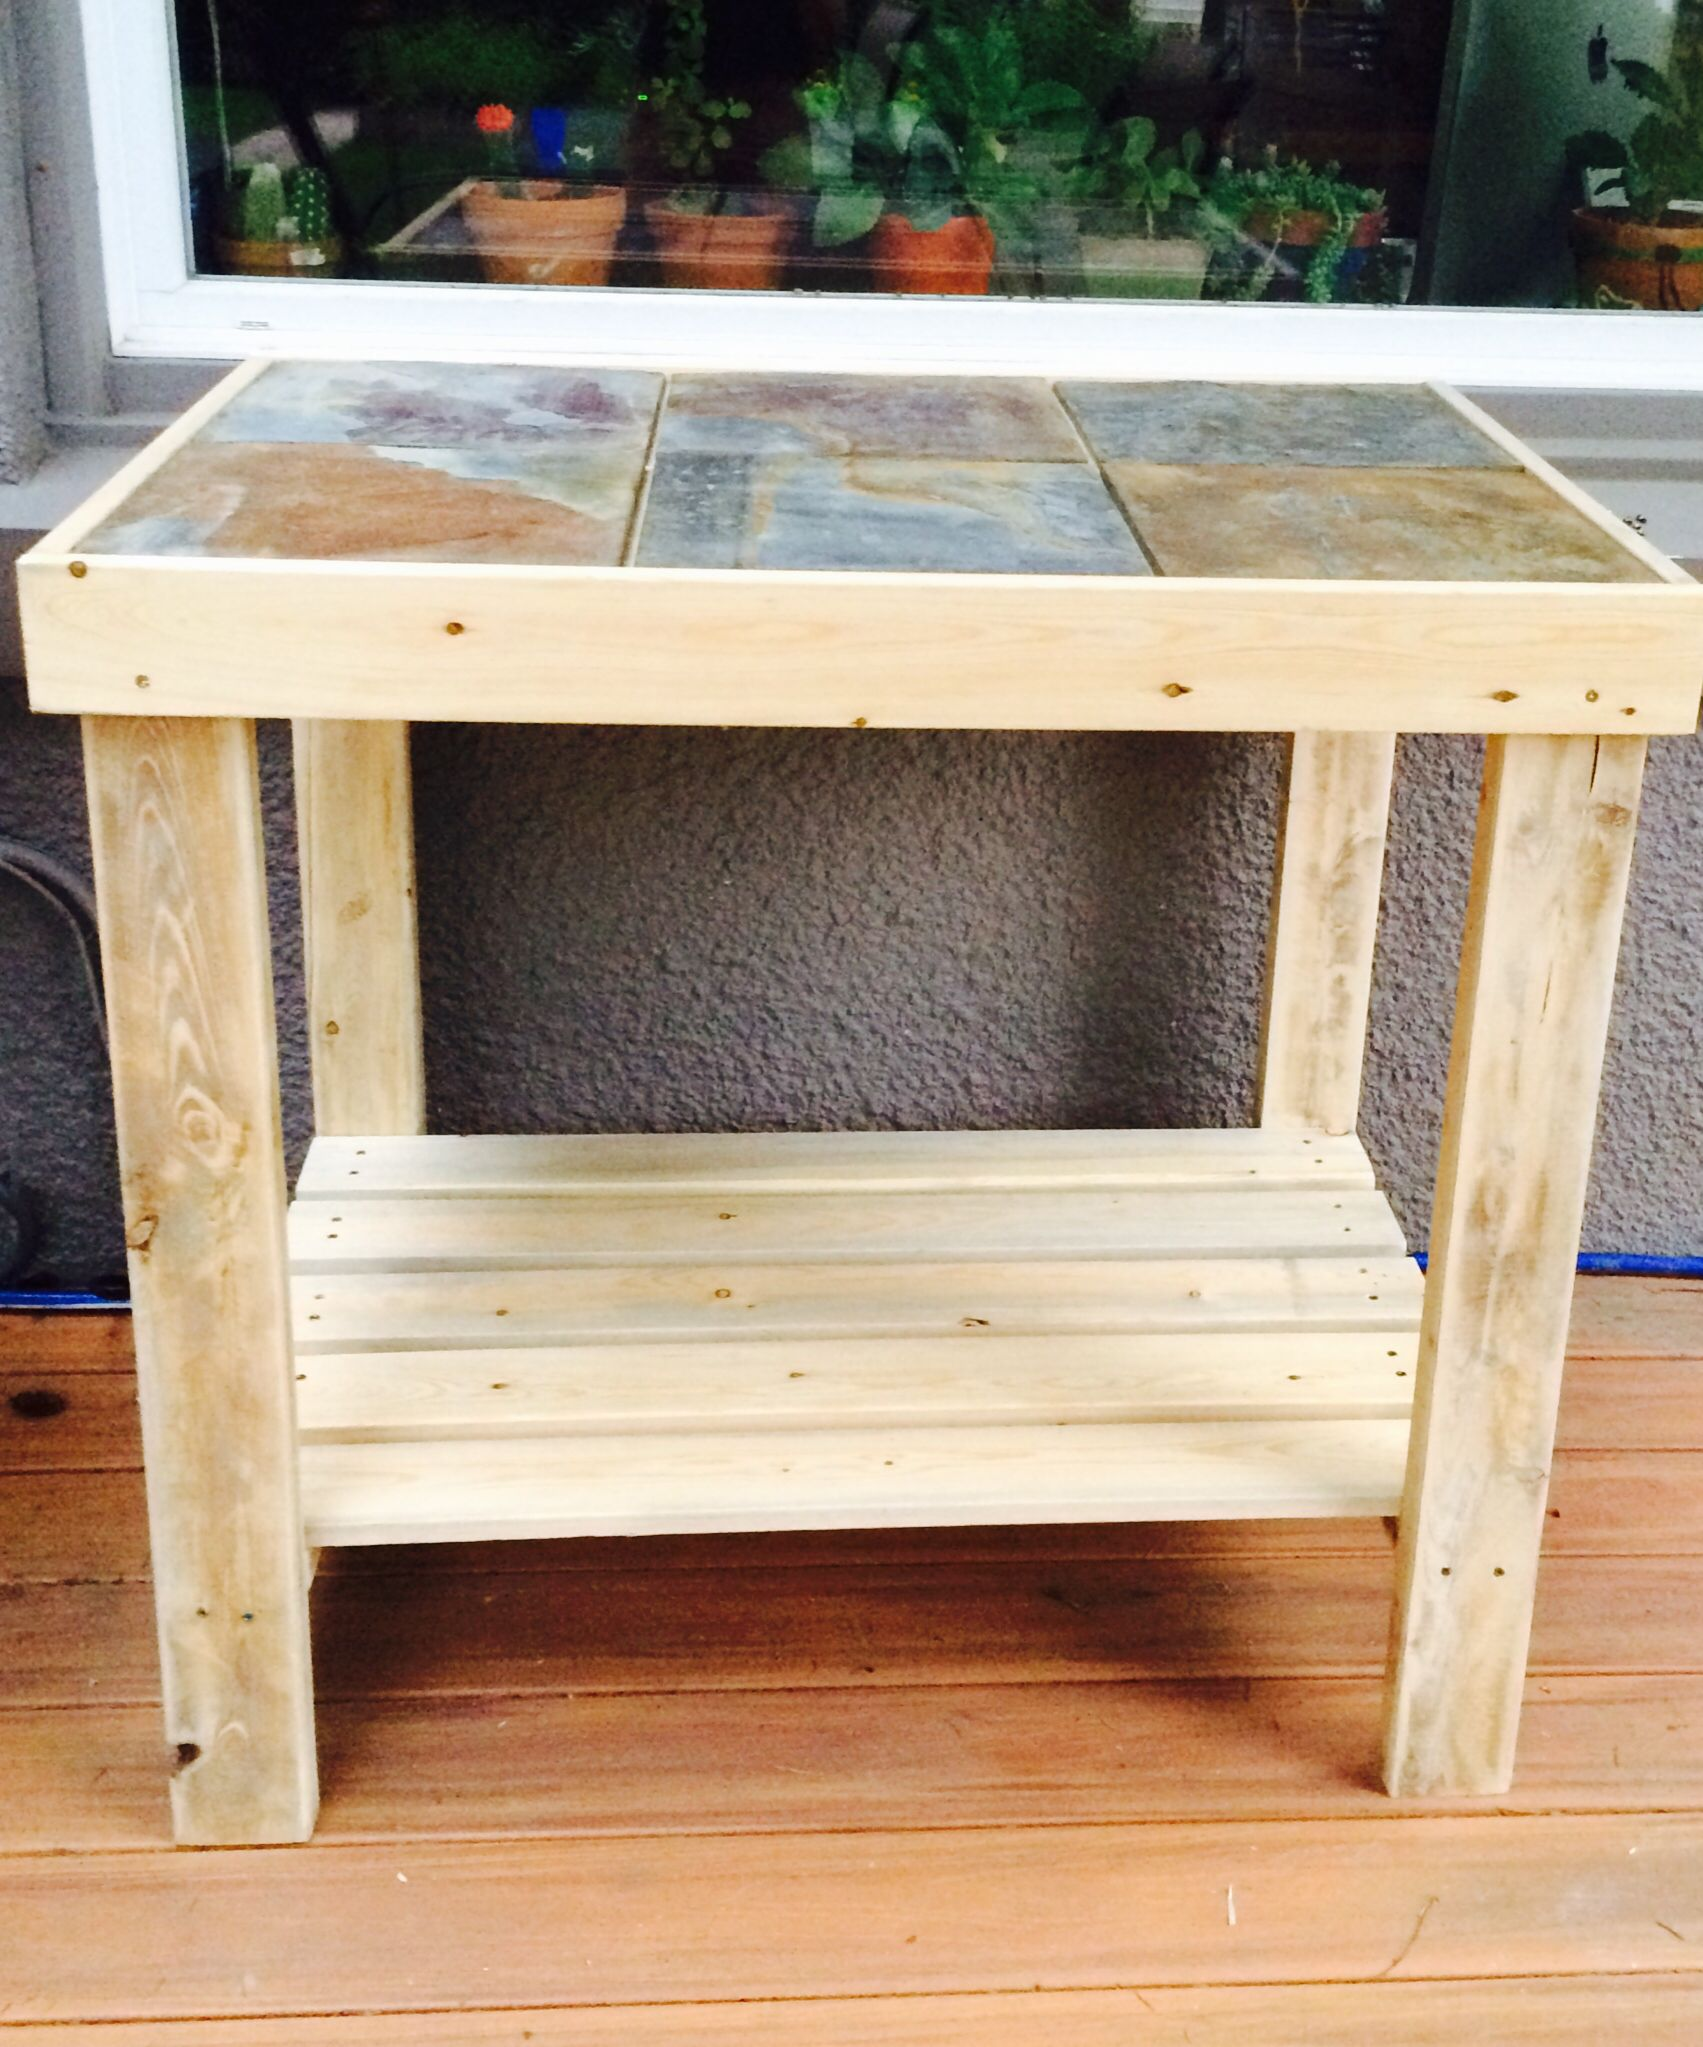 An Outdoor Side Table That Adds Extra Counter Space Next To My Bbq Constructed With